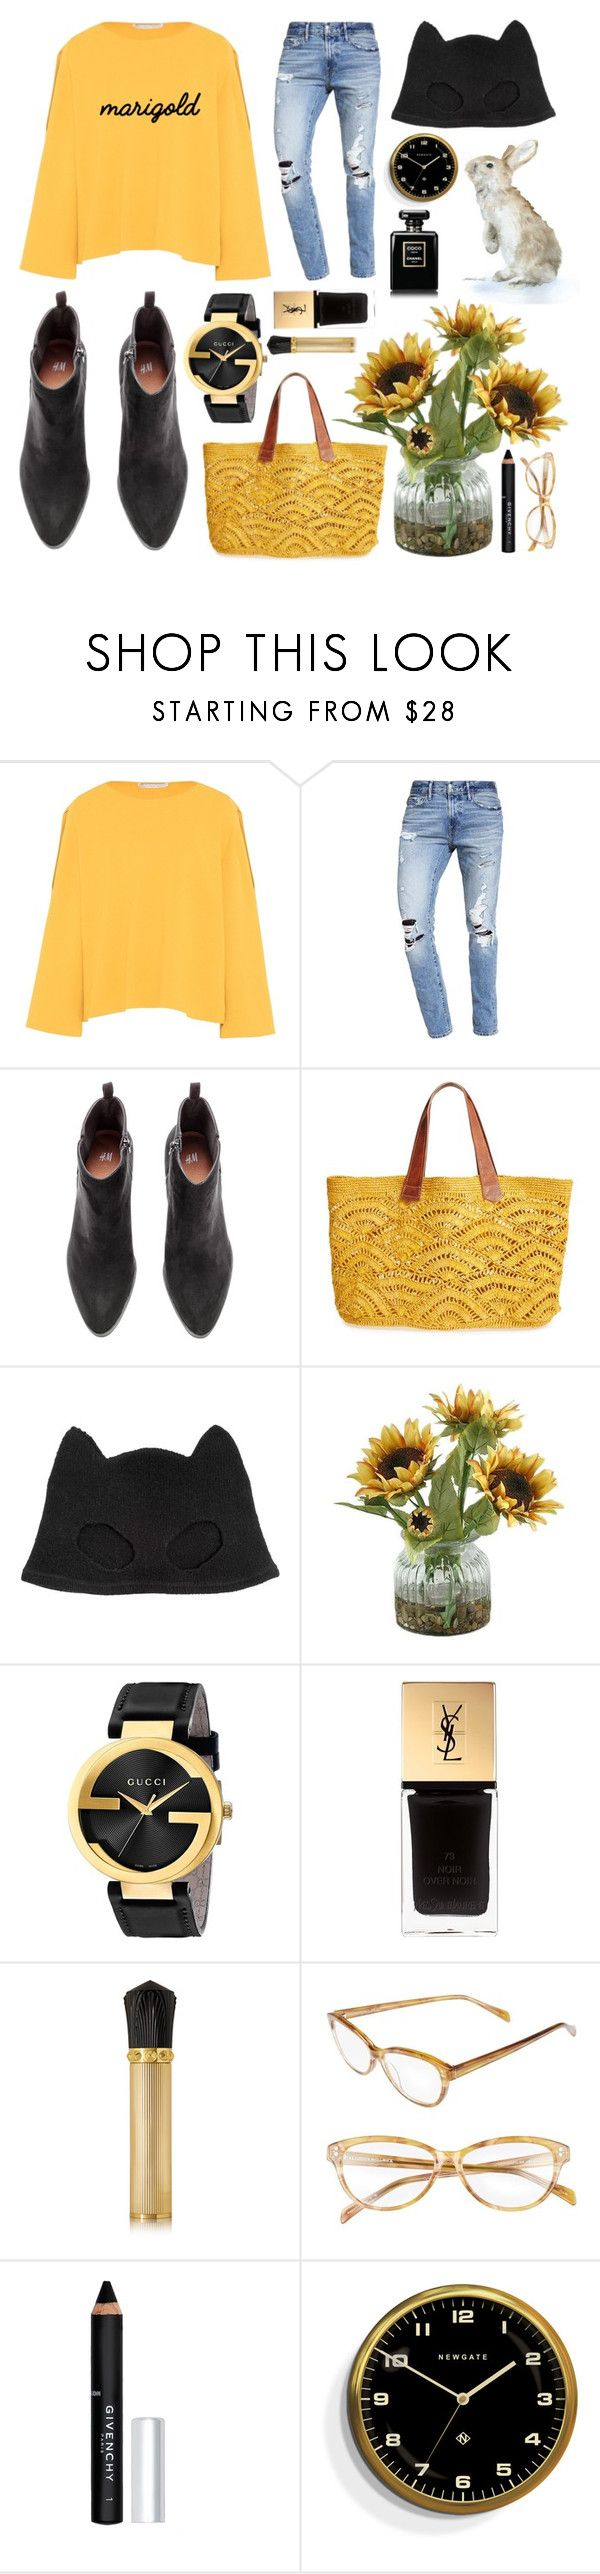 """""""Chava"""" by goingdigi on Polyvore featuring STELLA McCARTNEY, Abercrombie & Fitch, Mar y Sol, Silver Spoon Attire, Home Decorators Collection, Gucci, Yves Saint Laurent, Christian Louboutin, Corinne McCormack and Givenchy"""